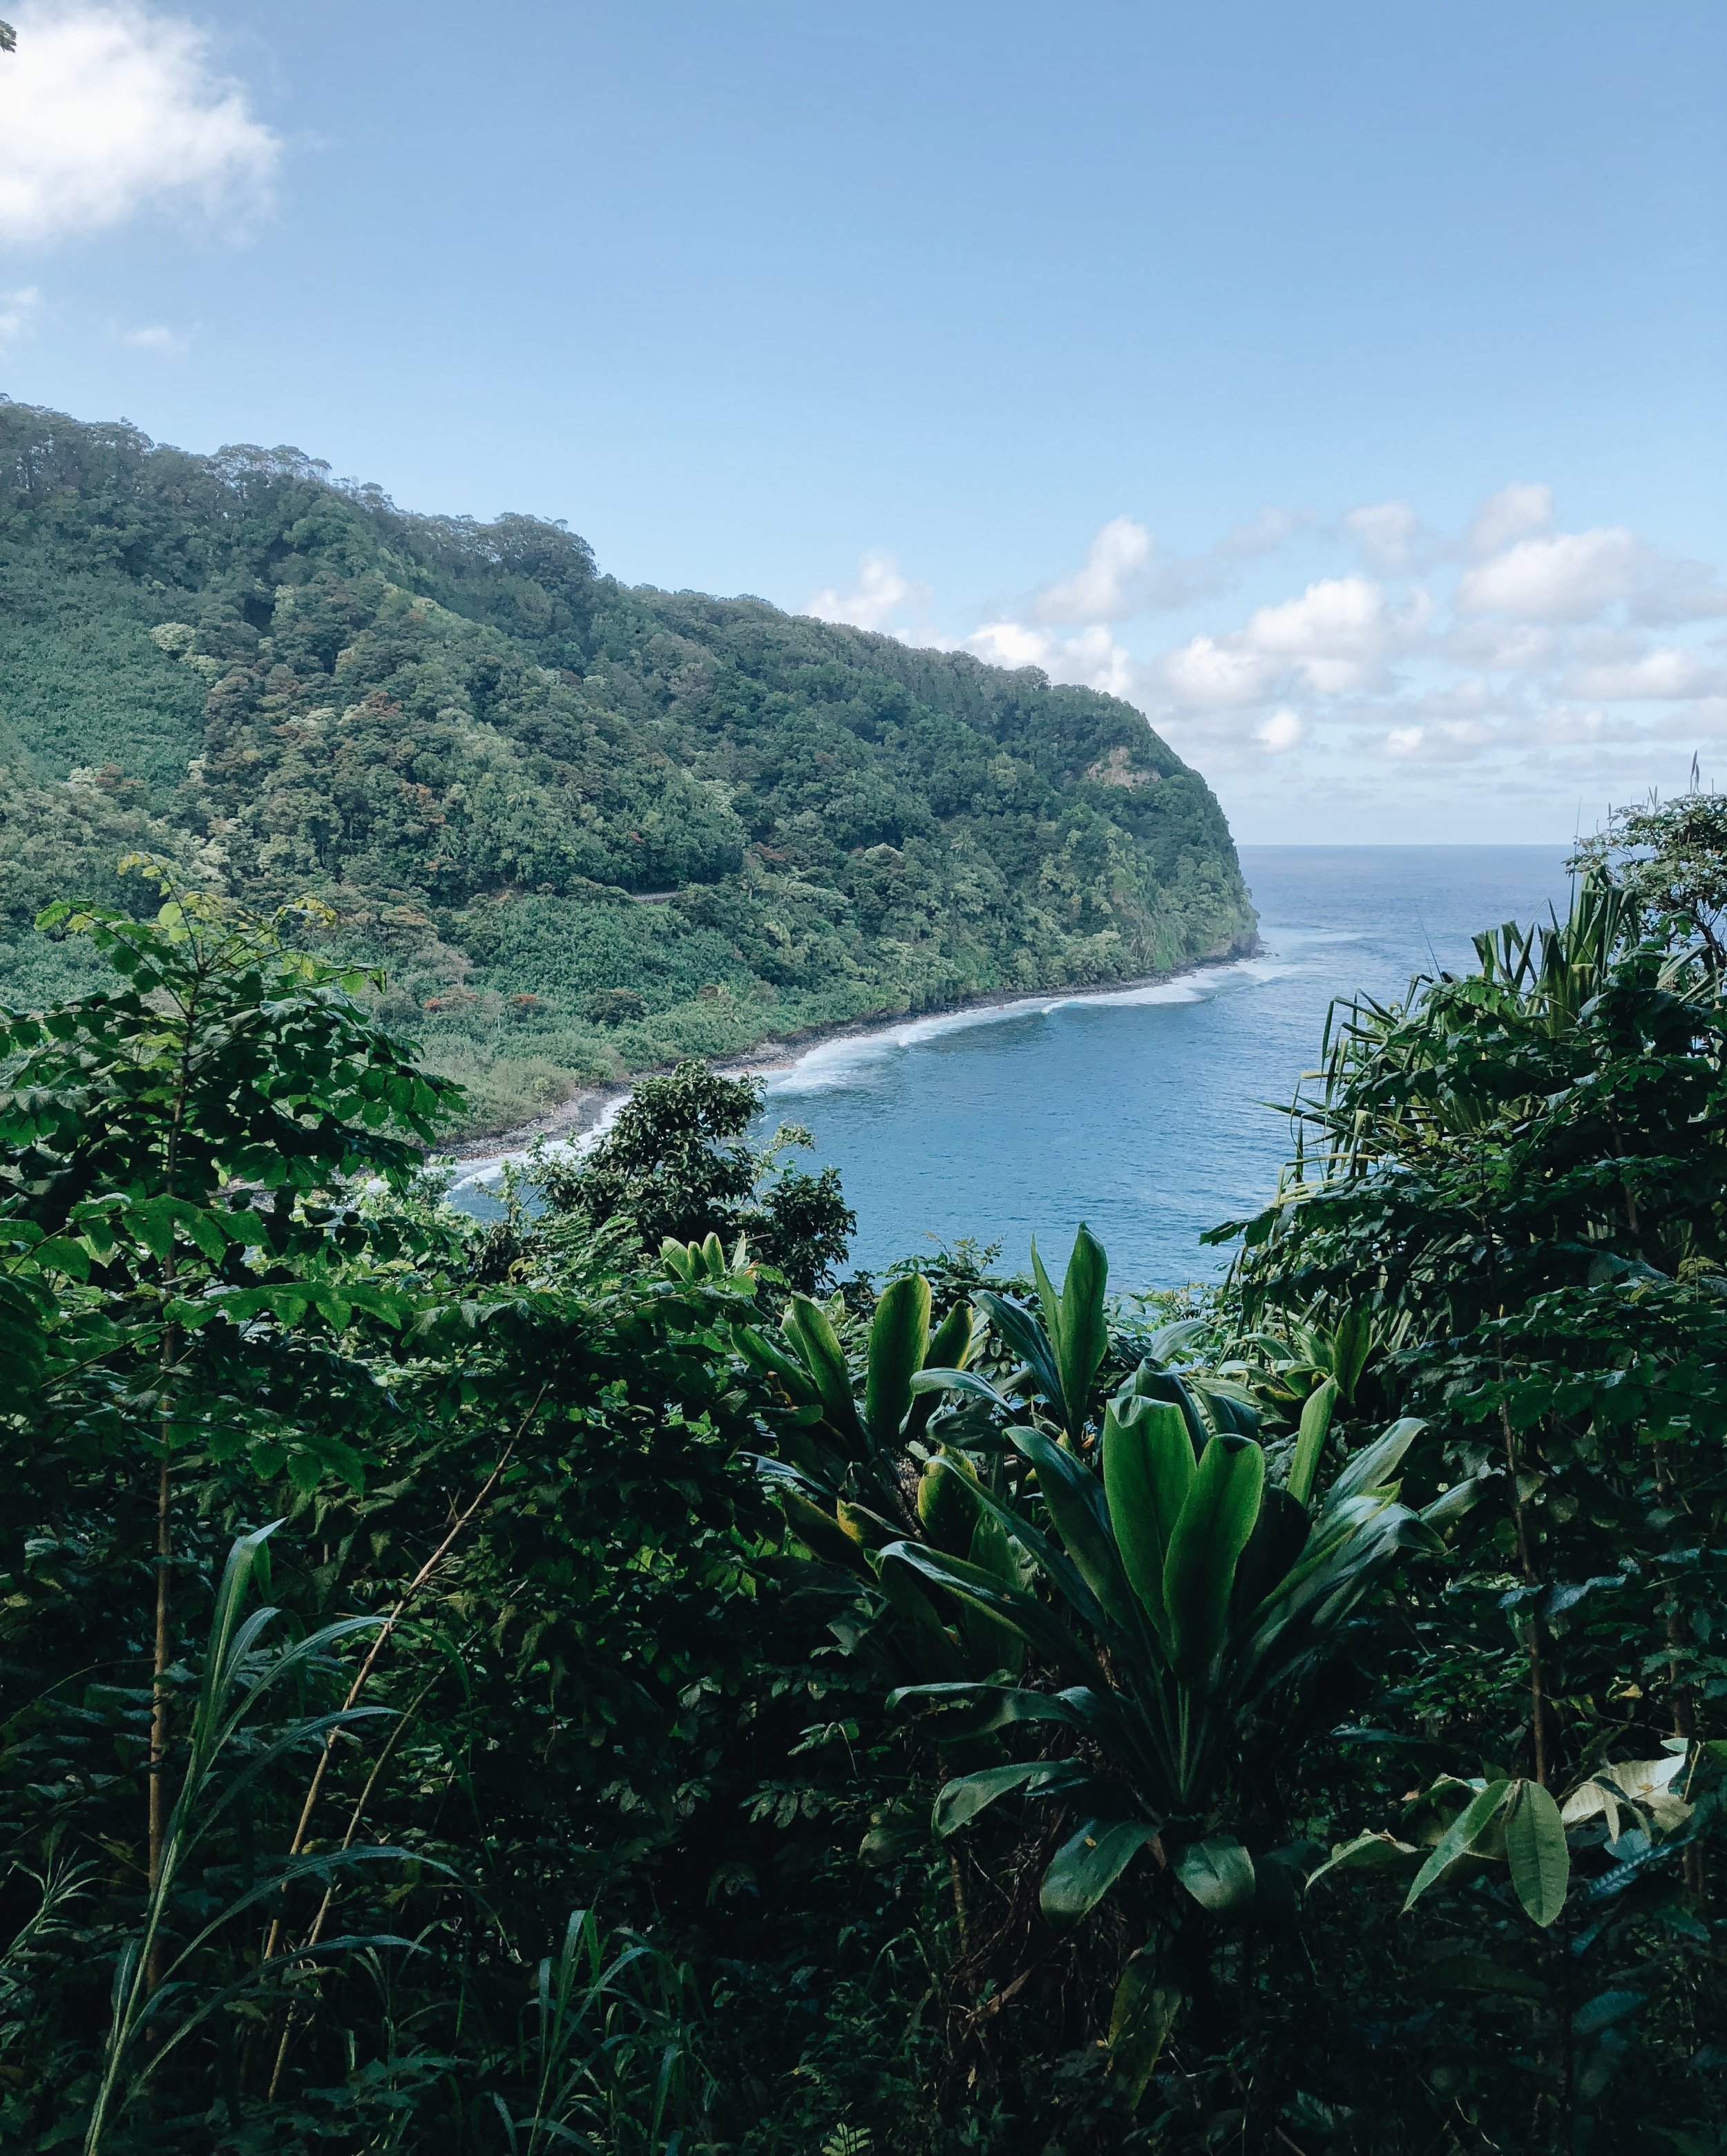 Taken on our drive on the Road to Hana. From the moment I landed I was obsessed with the fact that Jurassic Park was filmed on Maui. This picture is totally giving Jurassic Park vibes!